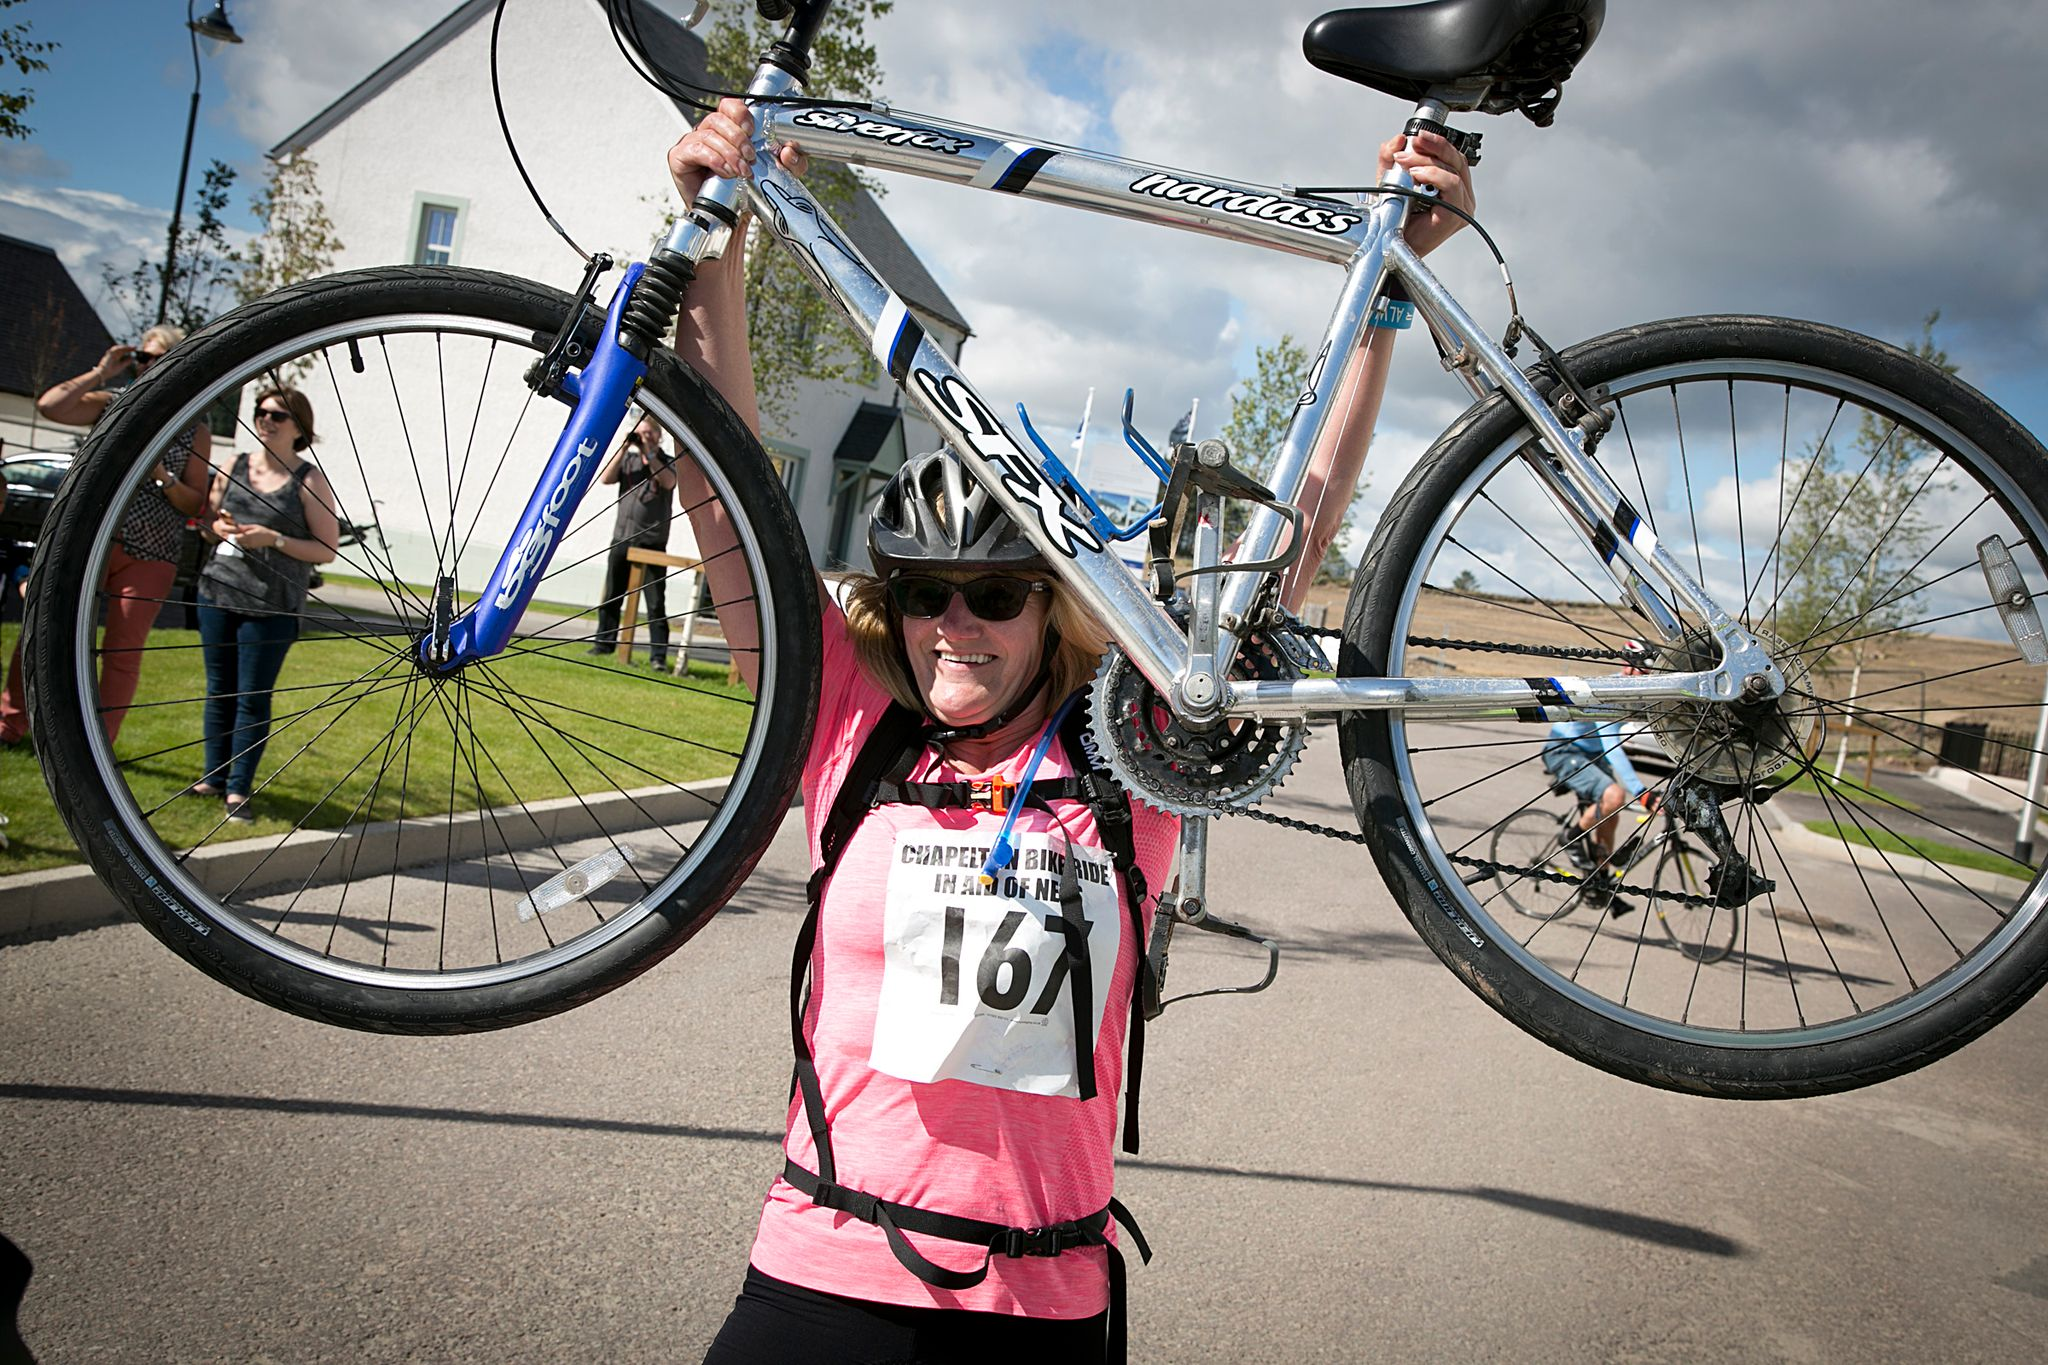 A participant in the Chapelton bike ride